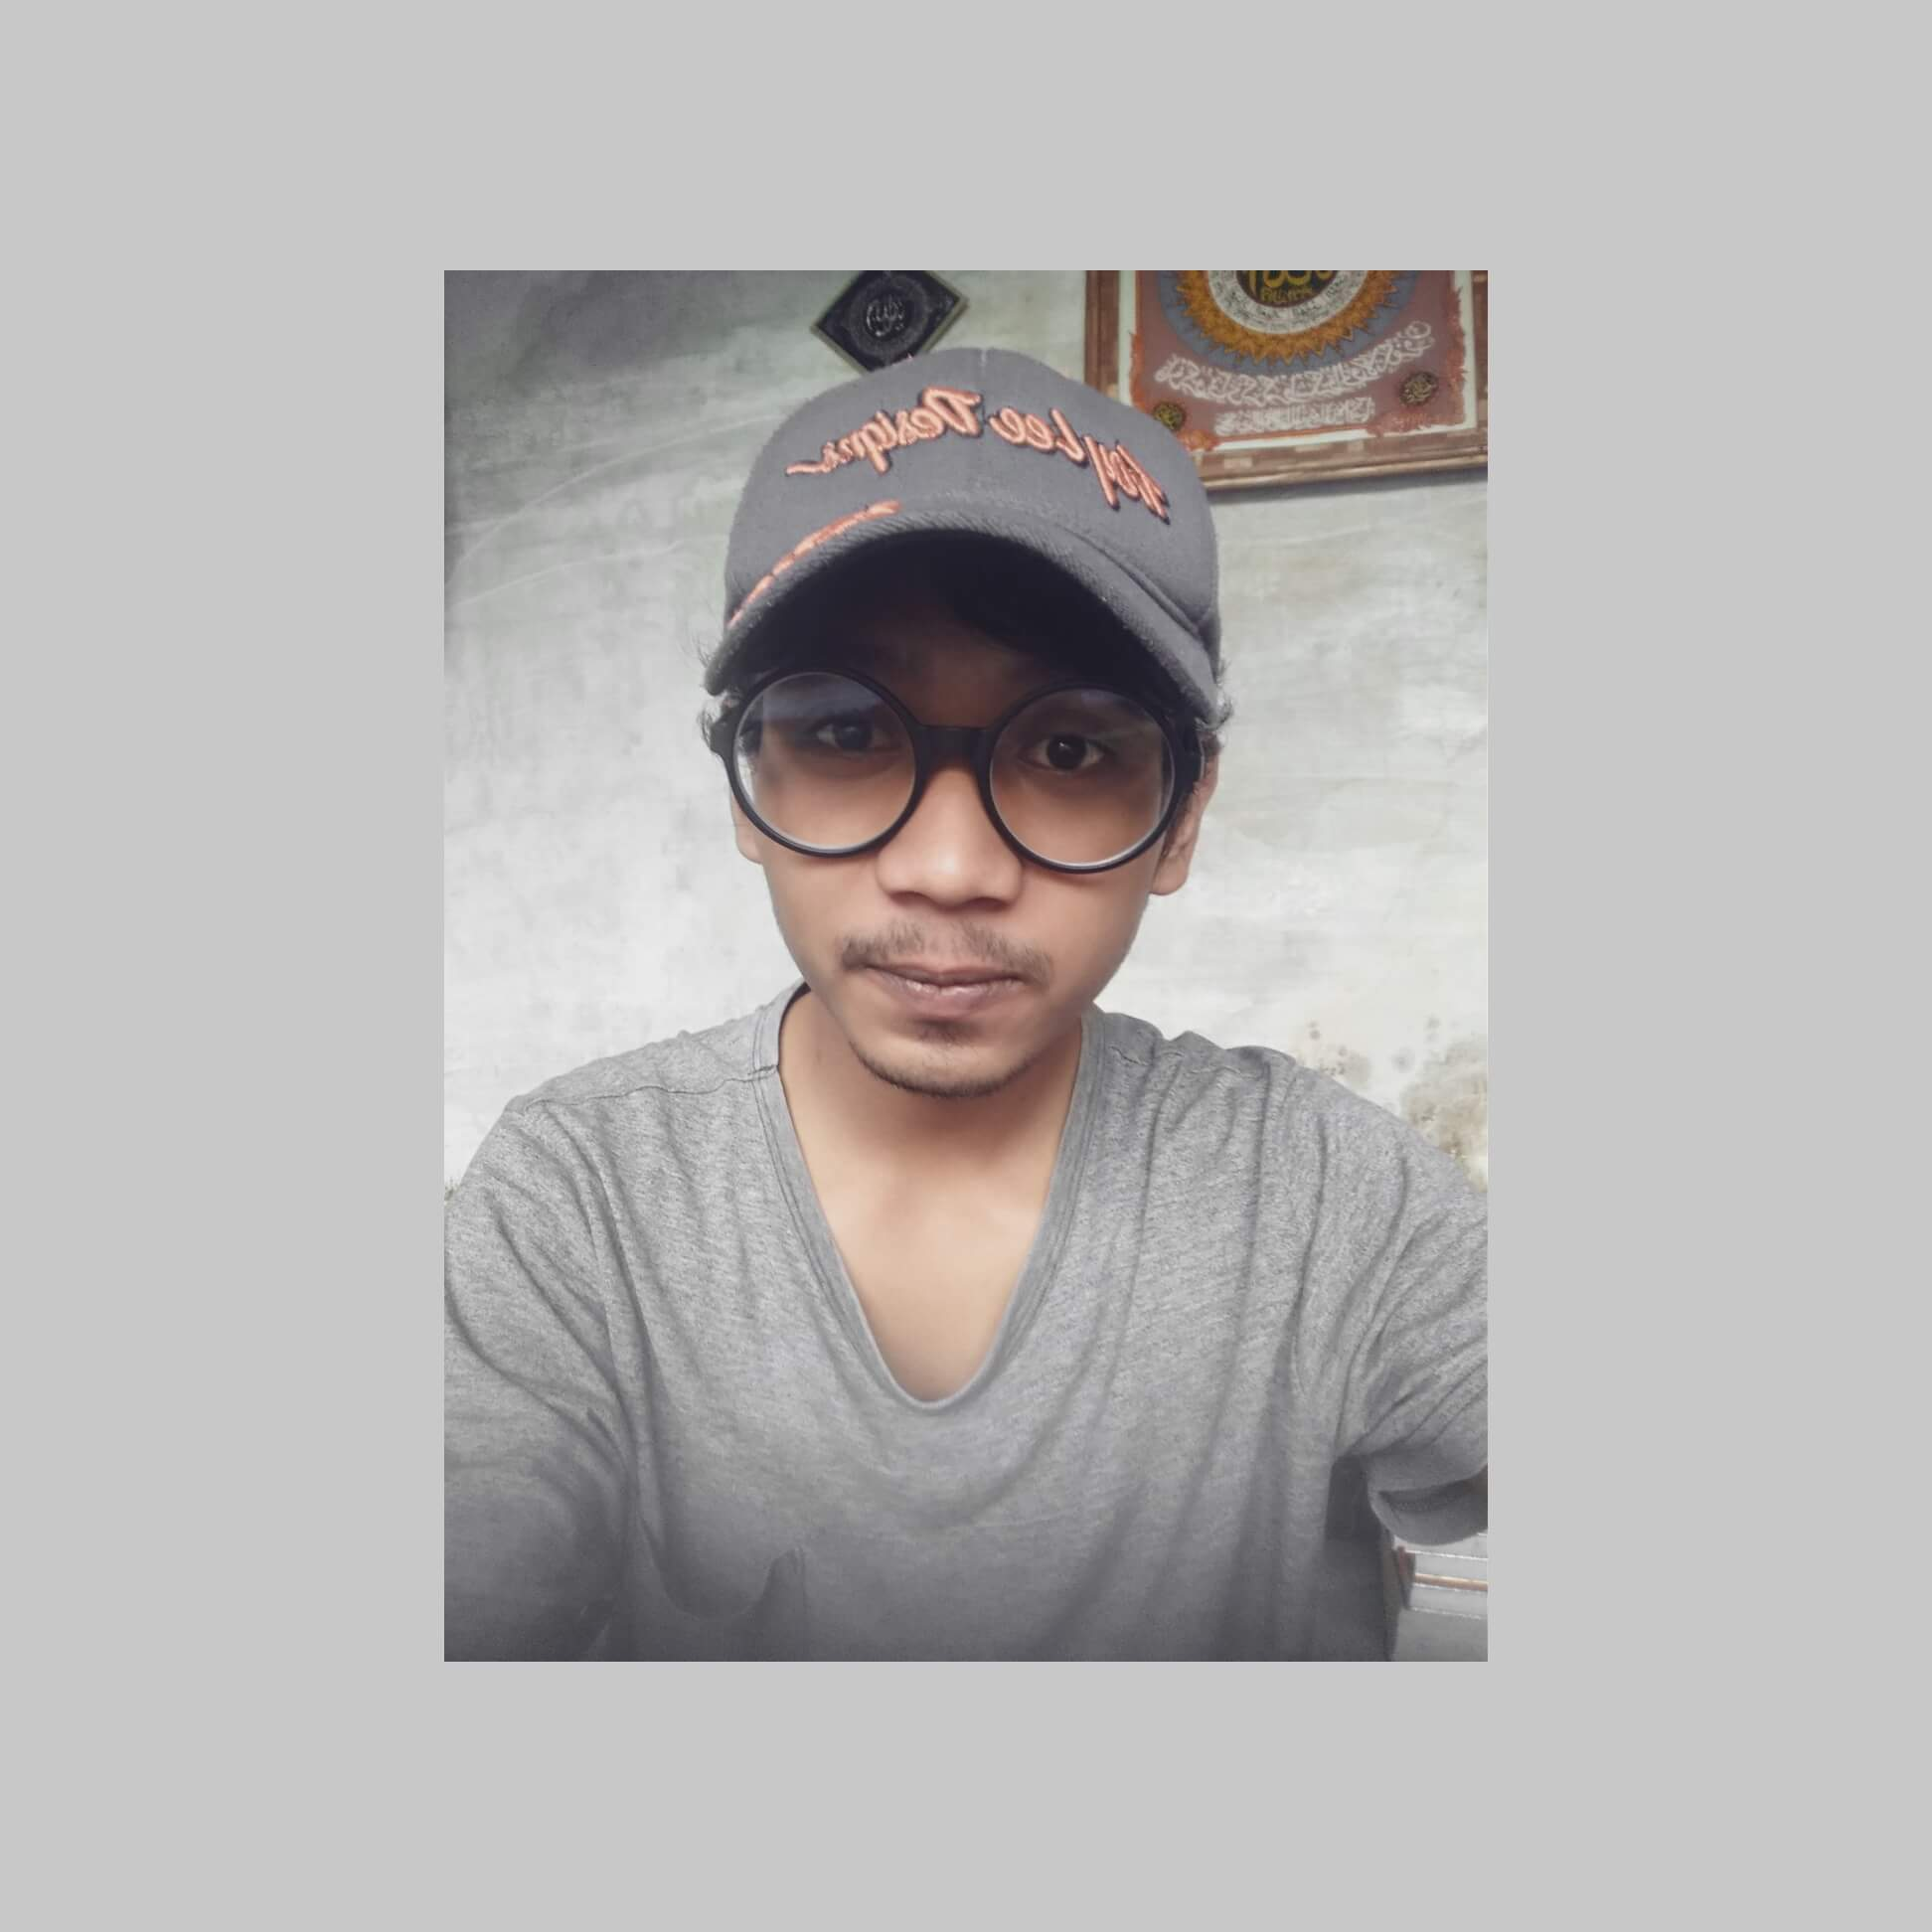 Budi with Hat ~ 2020/06/18